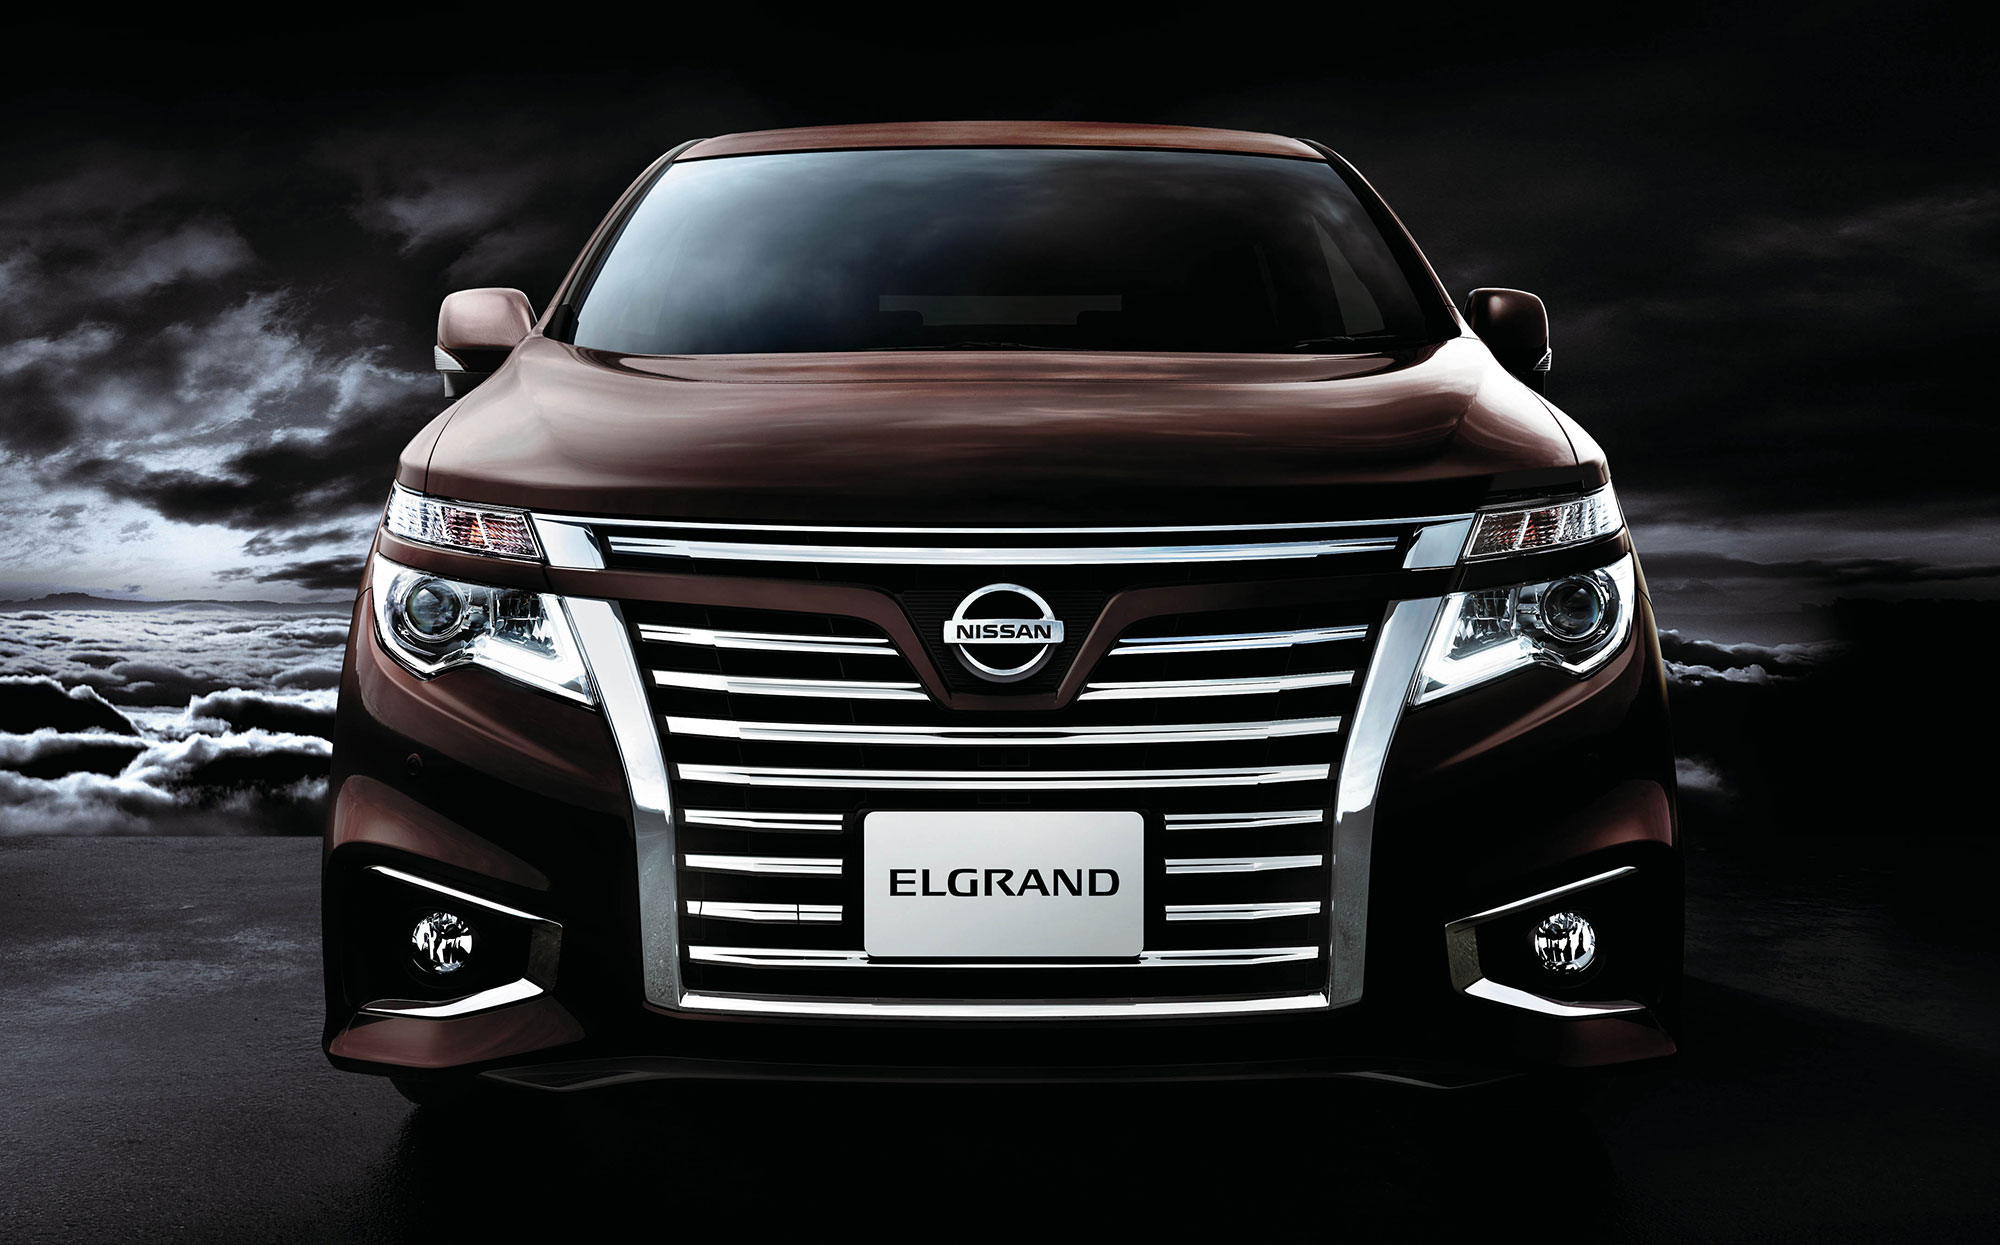 Nissan Elgrand Facelift MPV now in Malaysia, RM388k